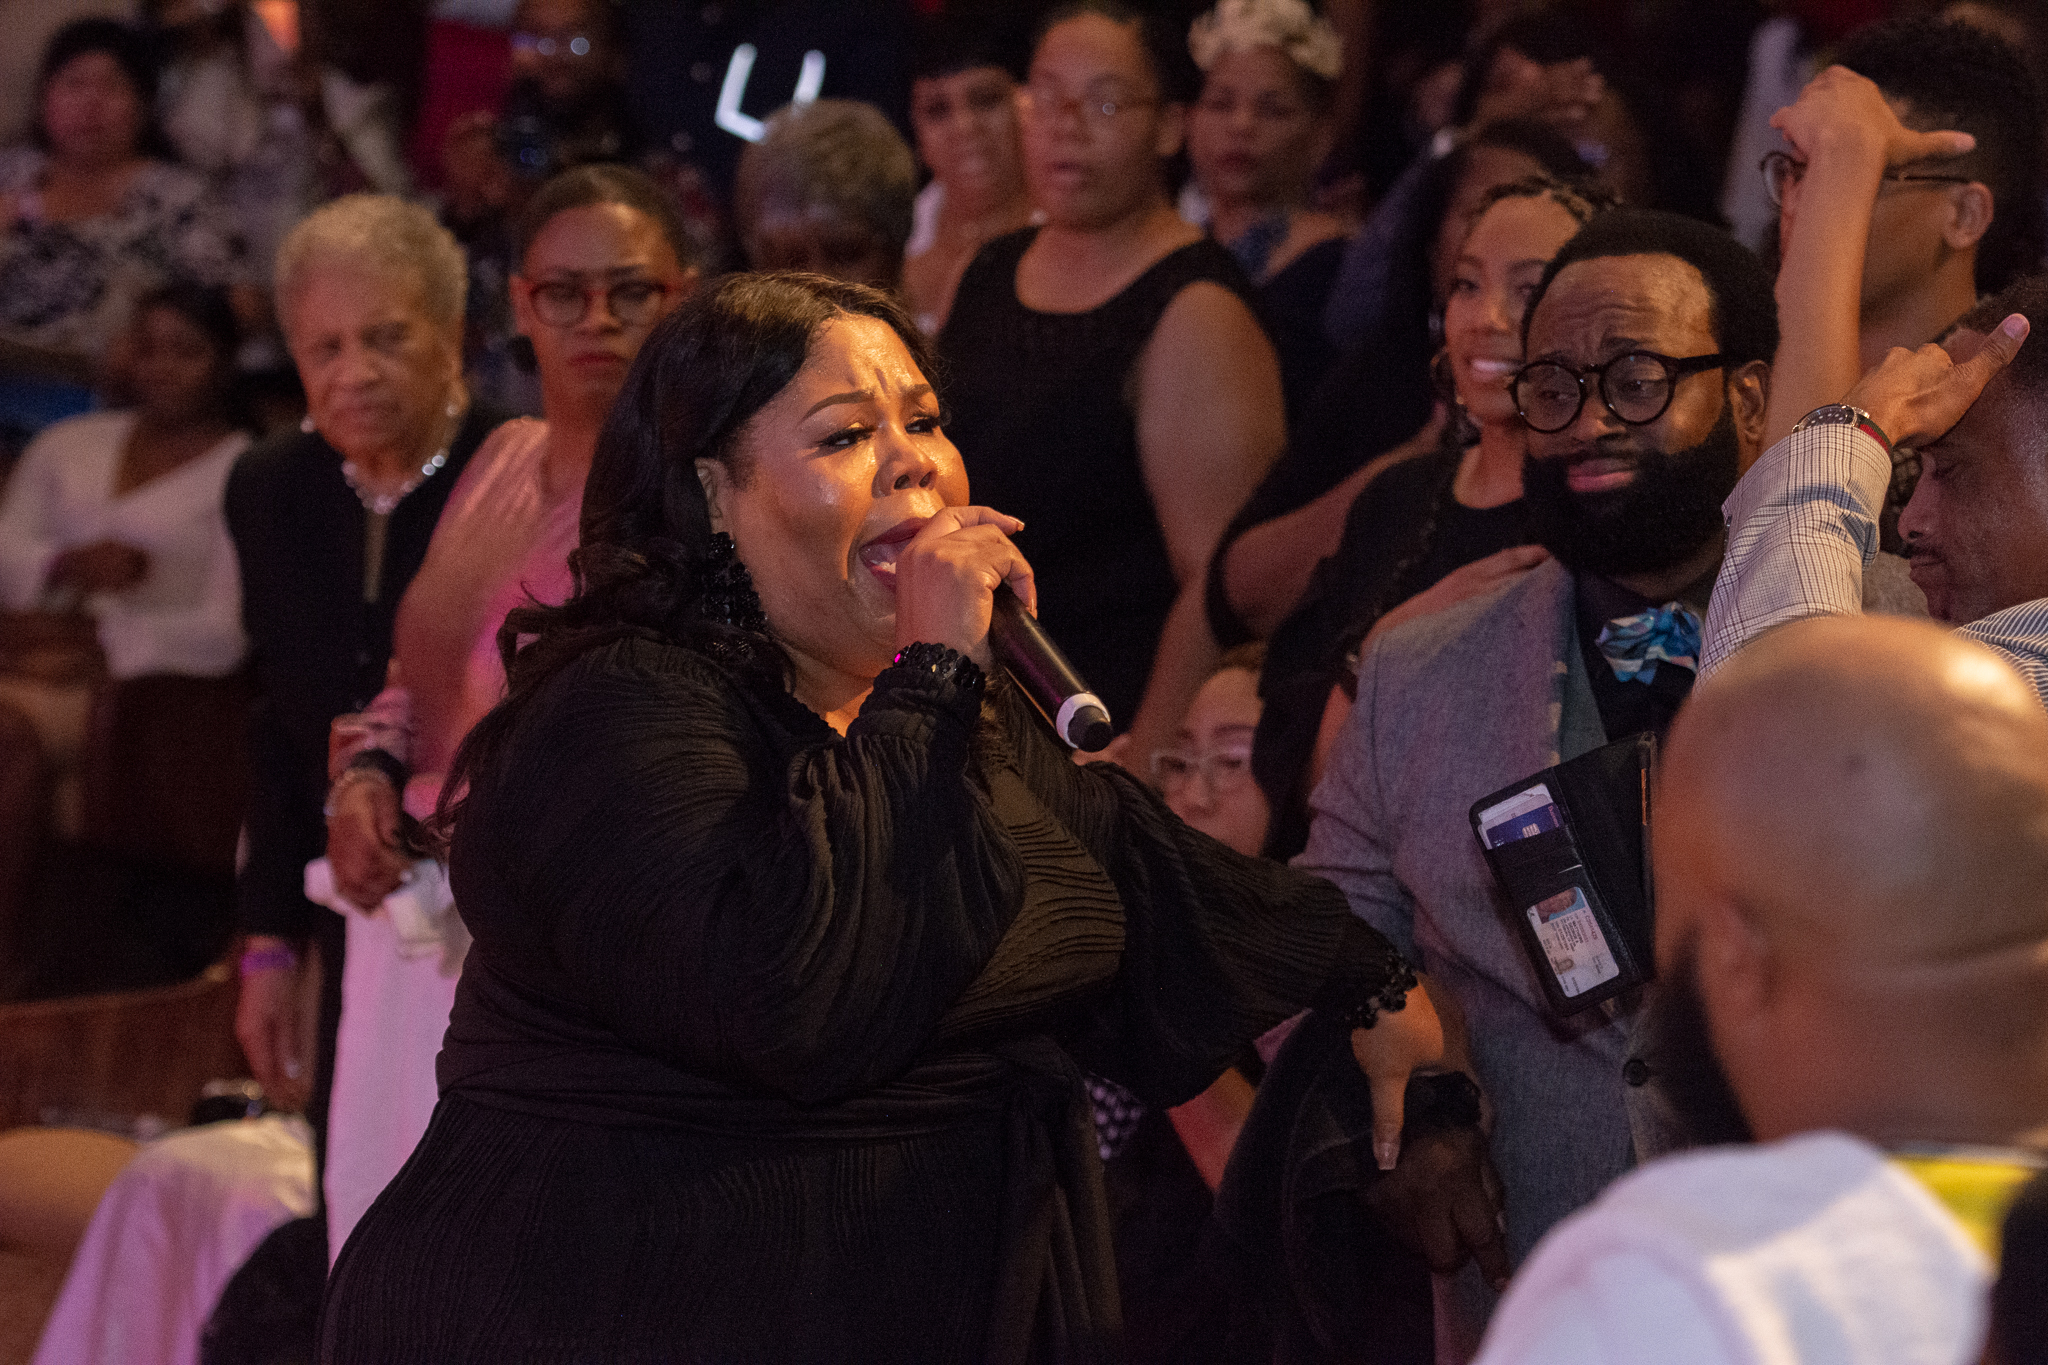 Psalmist-Chrystal-Rucker-FITB-TheTeam-Honors-Pastor-Shirley-Caesar-and-Chrystal-Rucker